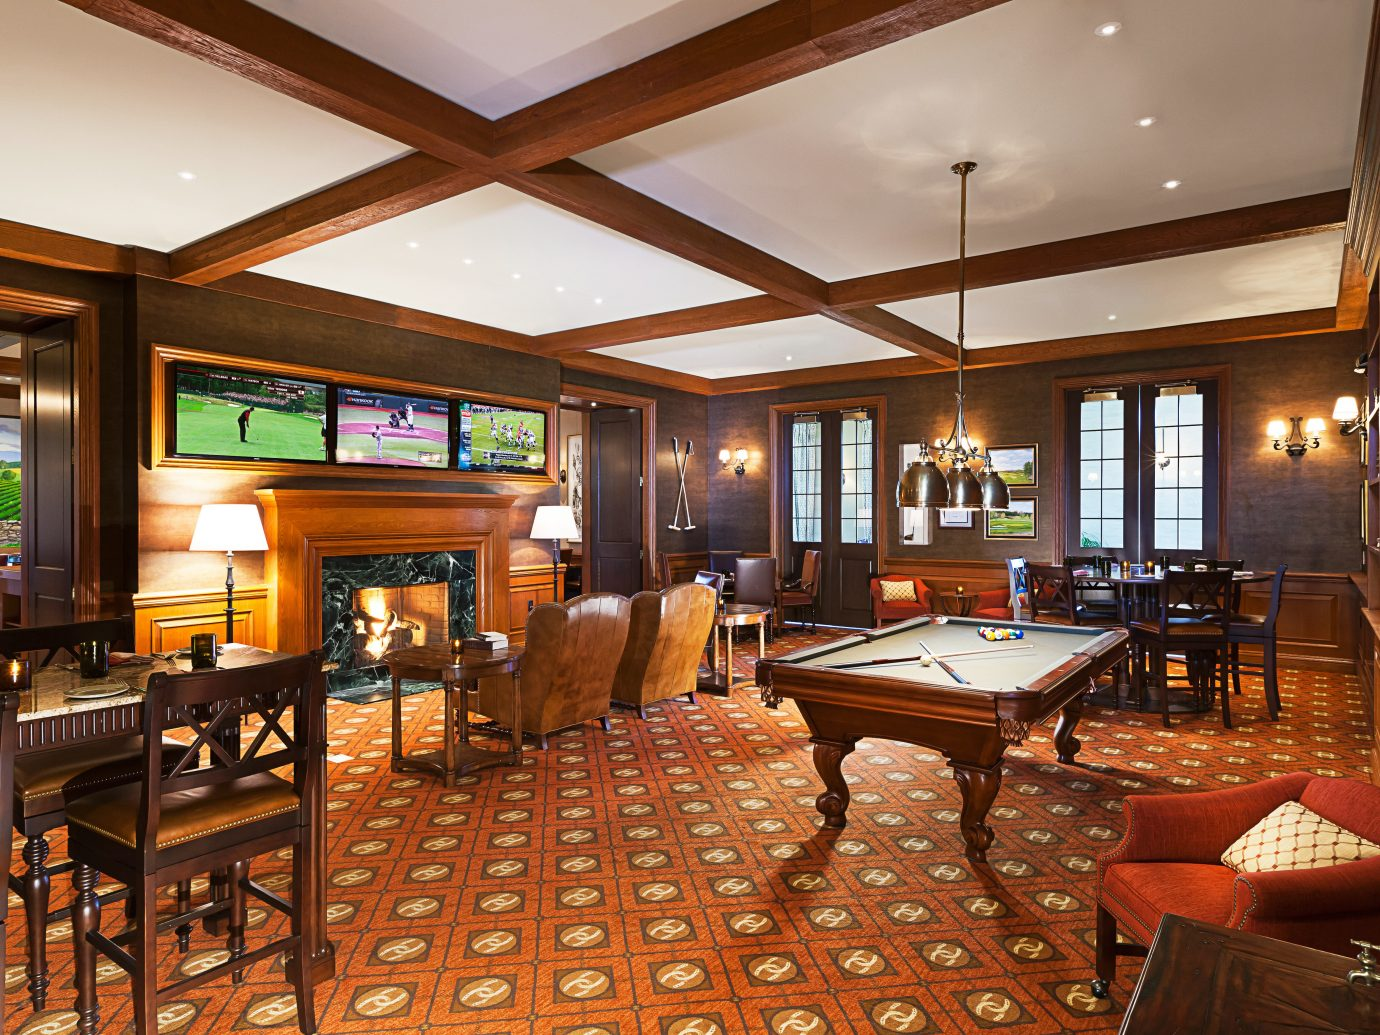 Country Fireplace Hotels Lounge Ranch Resort Romance indoor floor room Living ceiling window property recreation room estate billiard room Lobby furniture real estate interior design restaurant Suite living room area decorated several